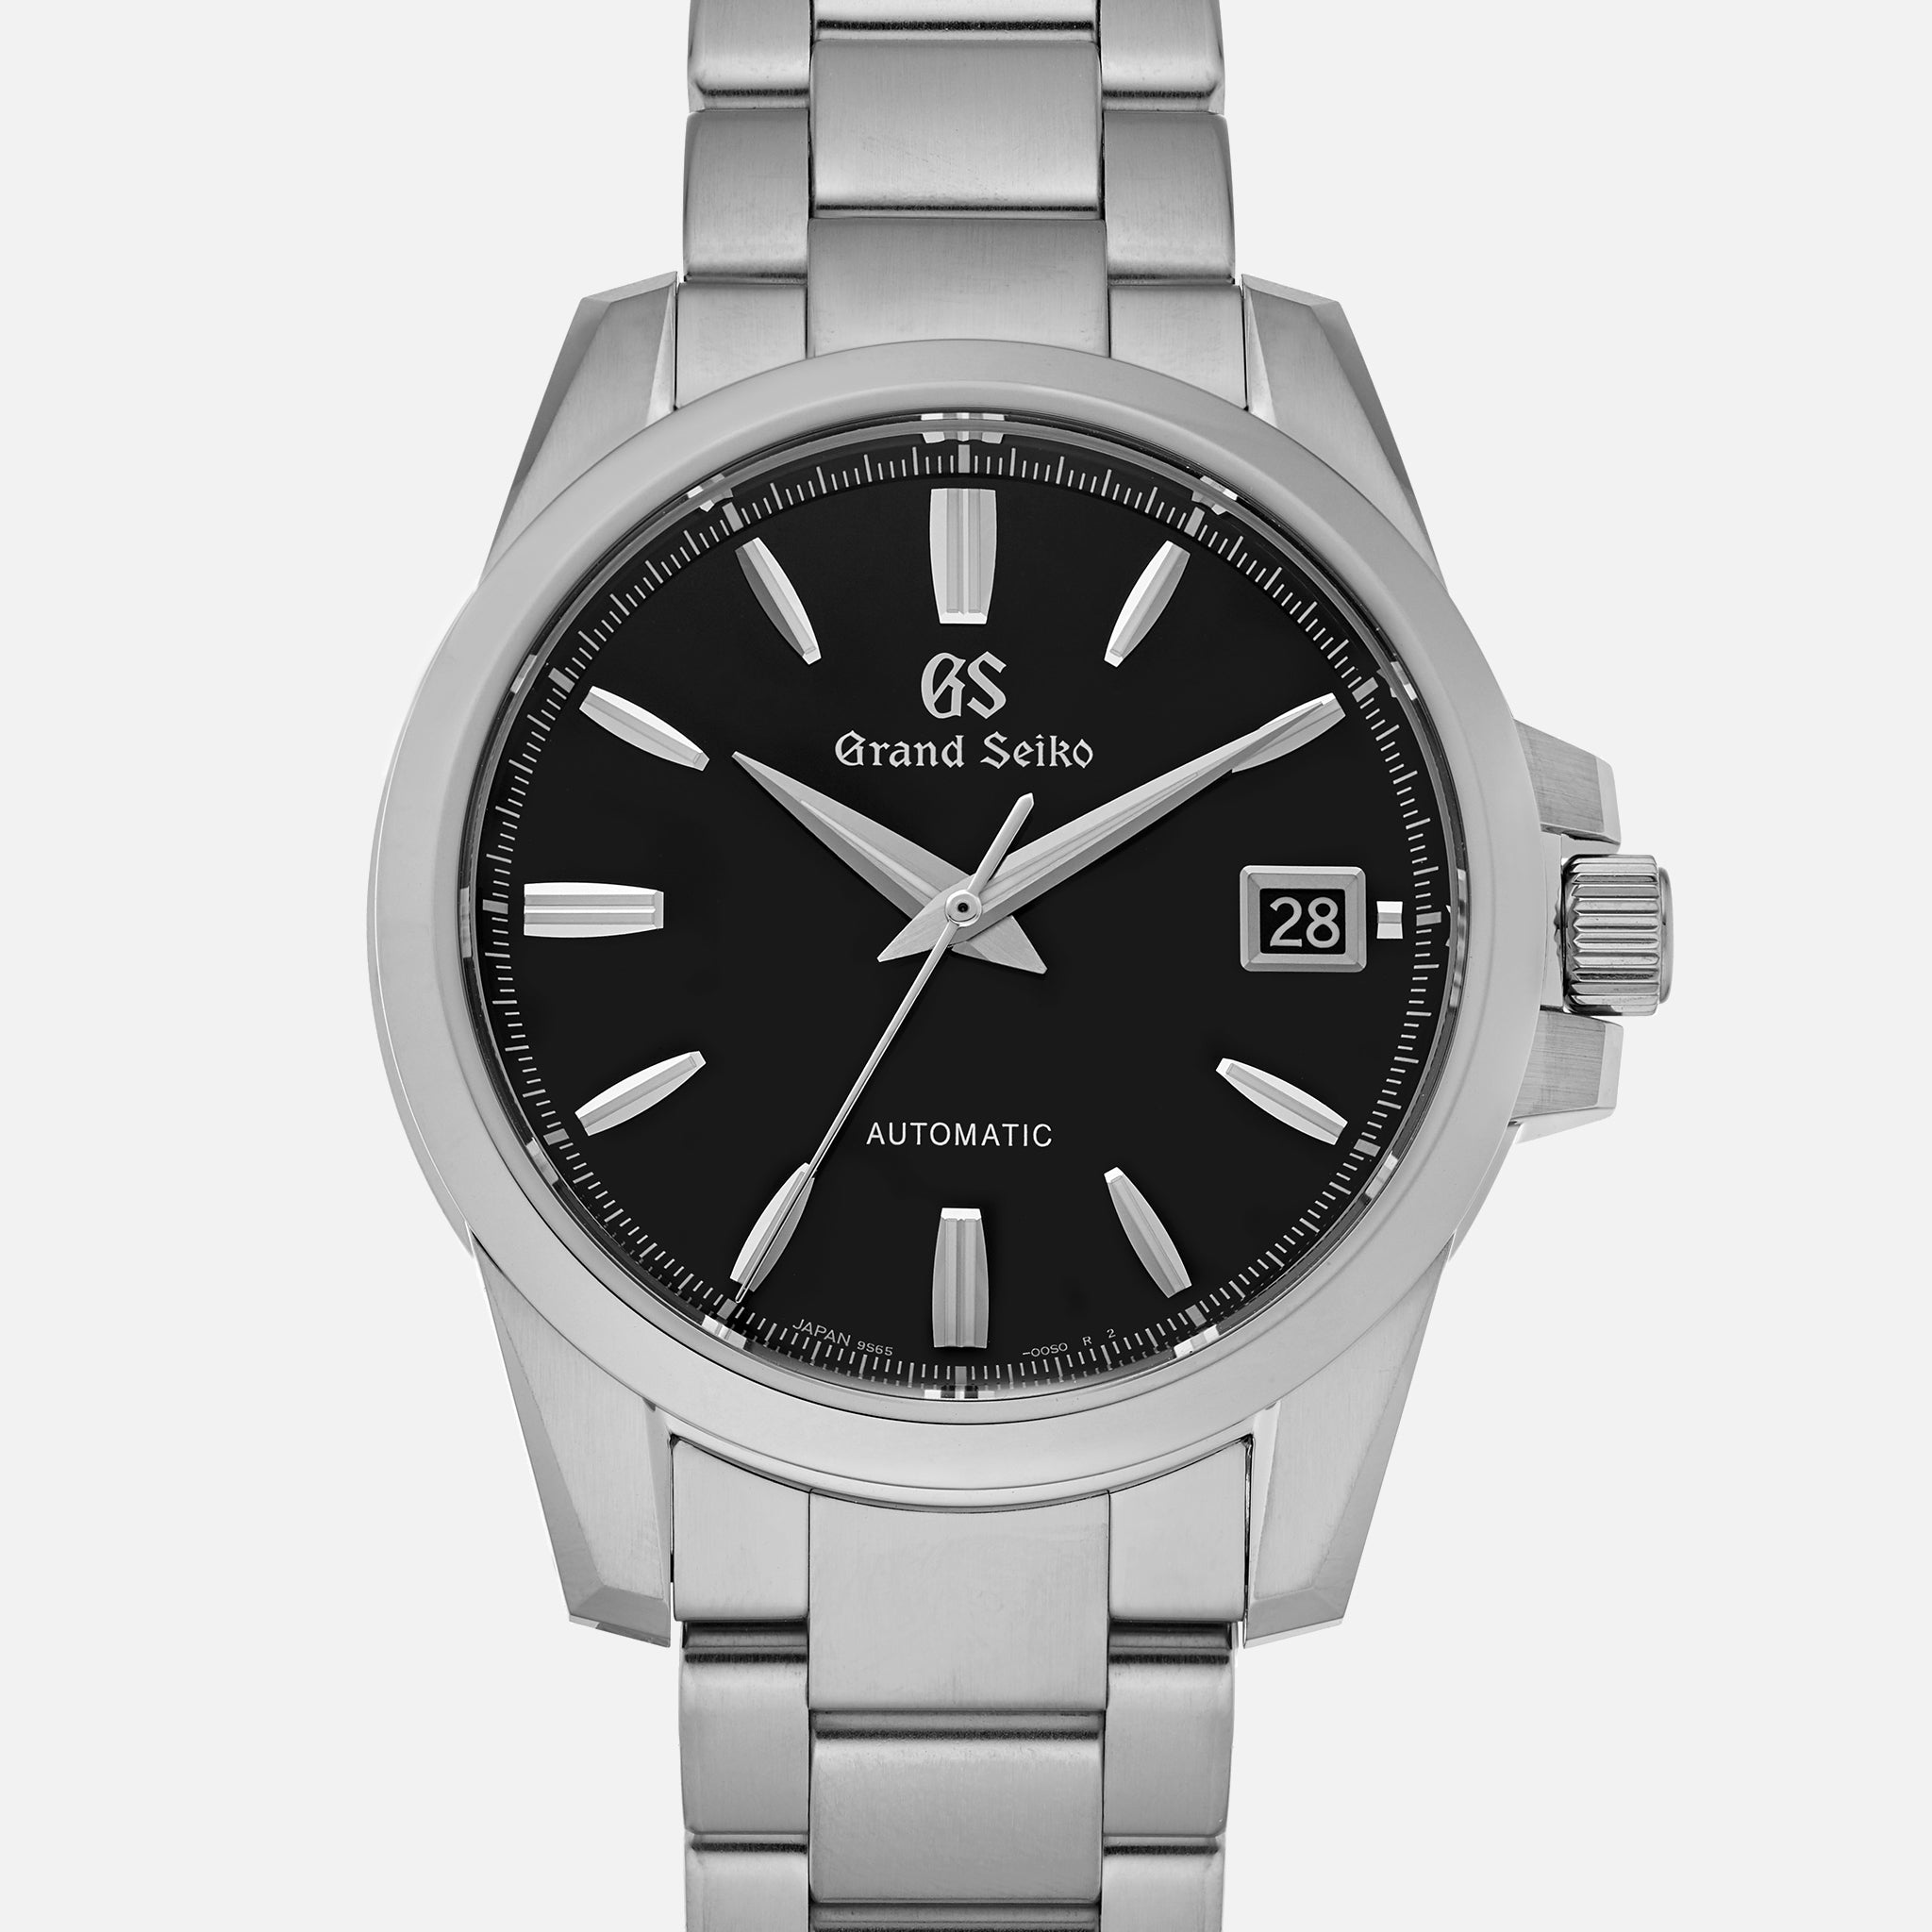 seiko via grand pin gmt watches r